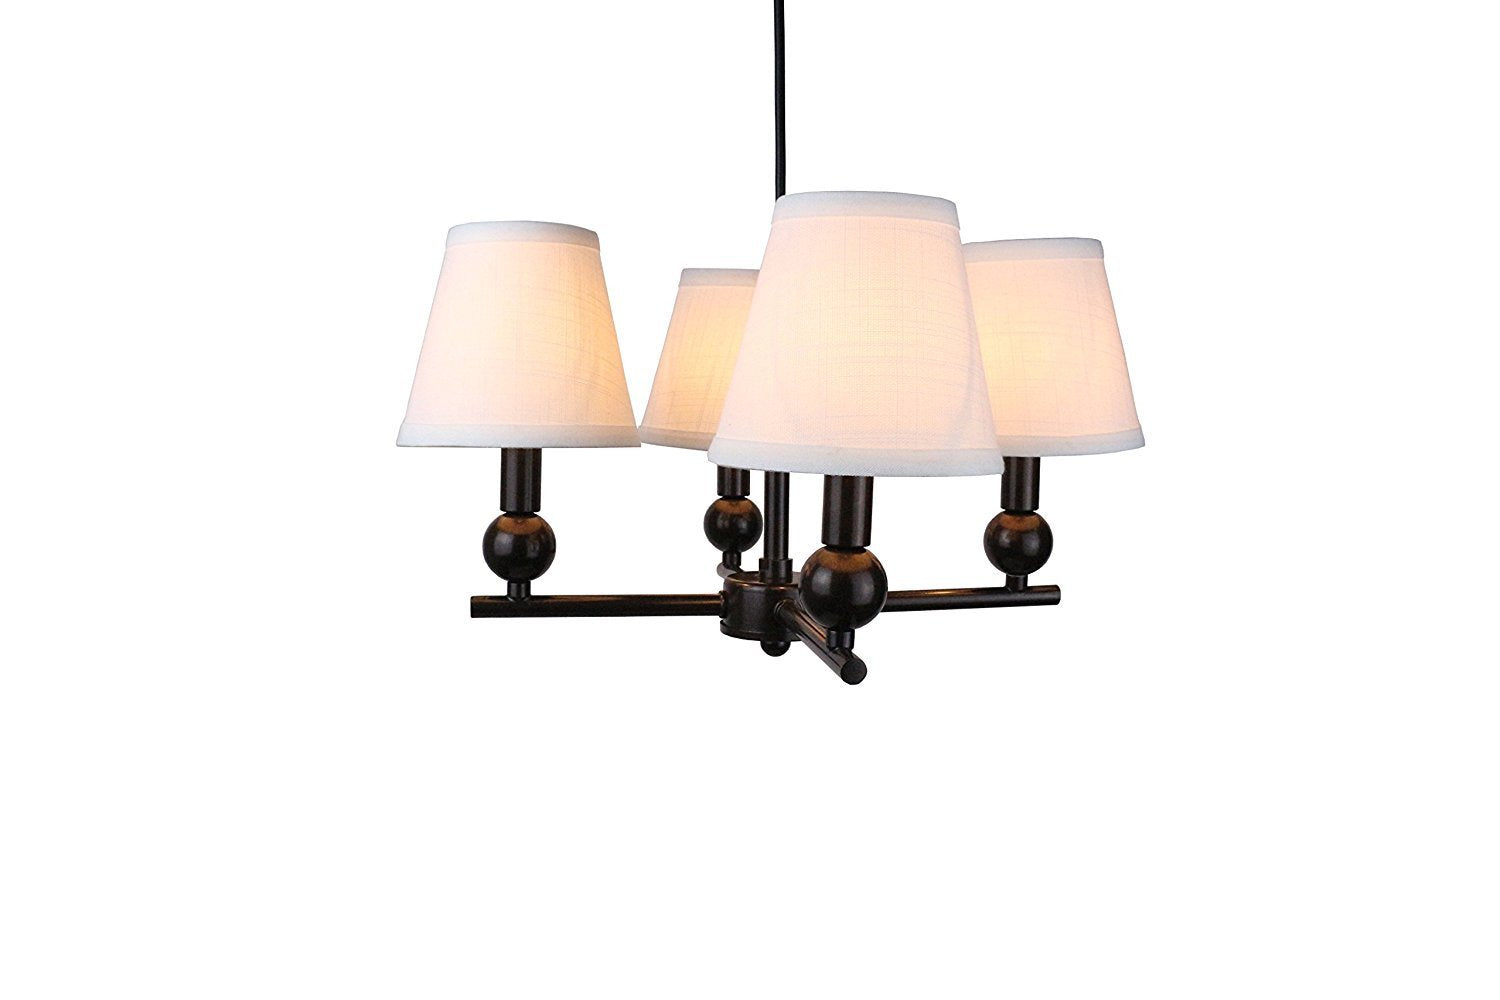 Portable Zio 4-Light Chandelier with Off White Linen Hardback Shades